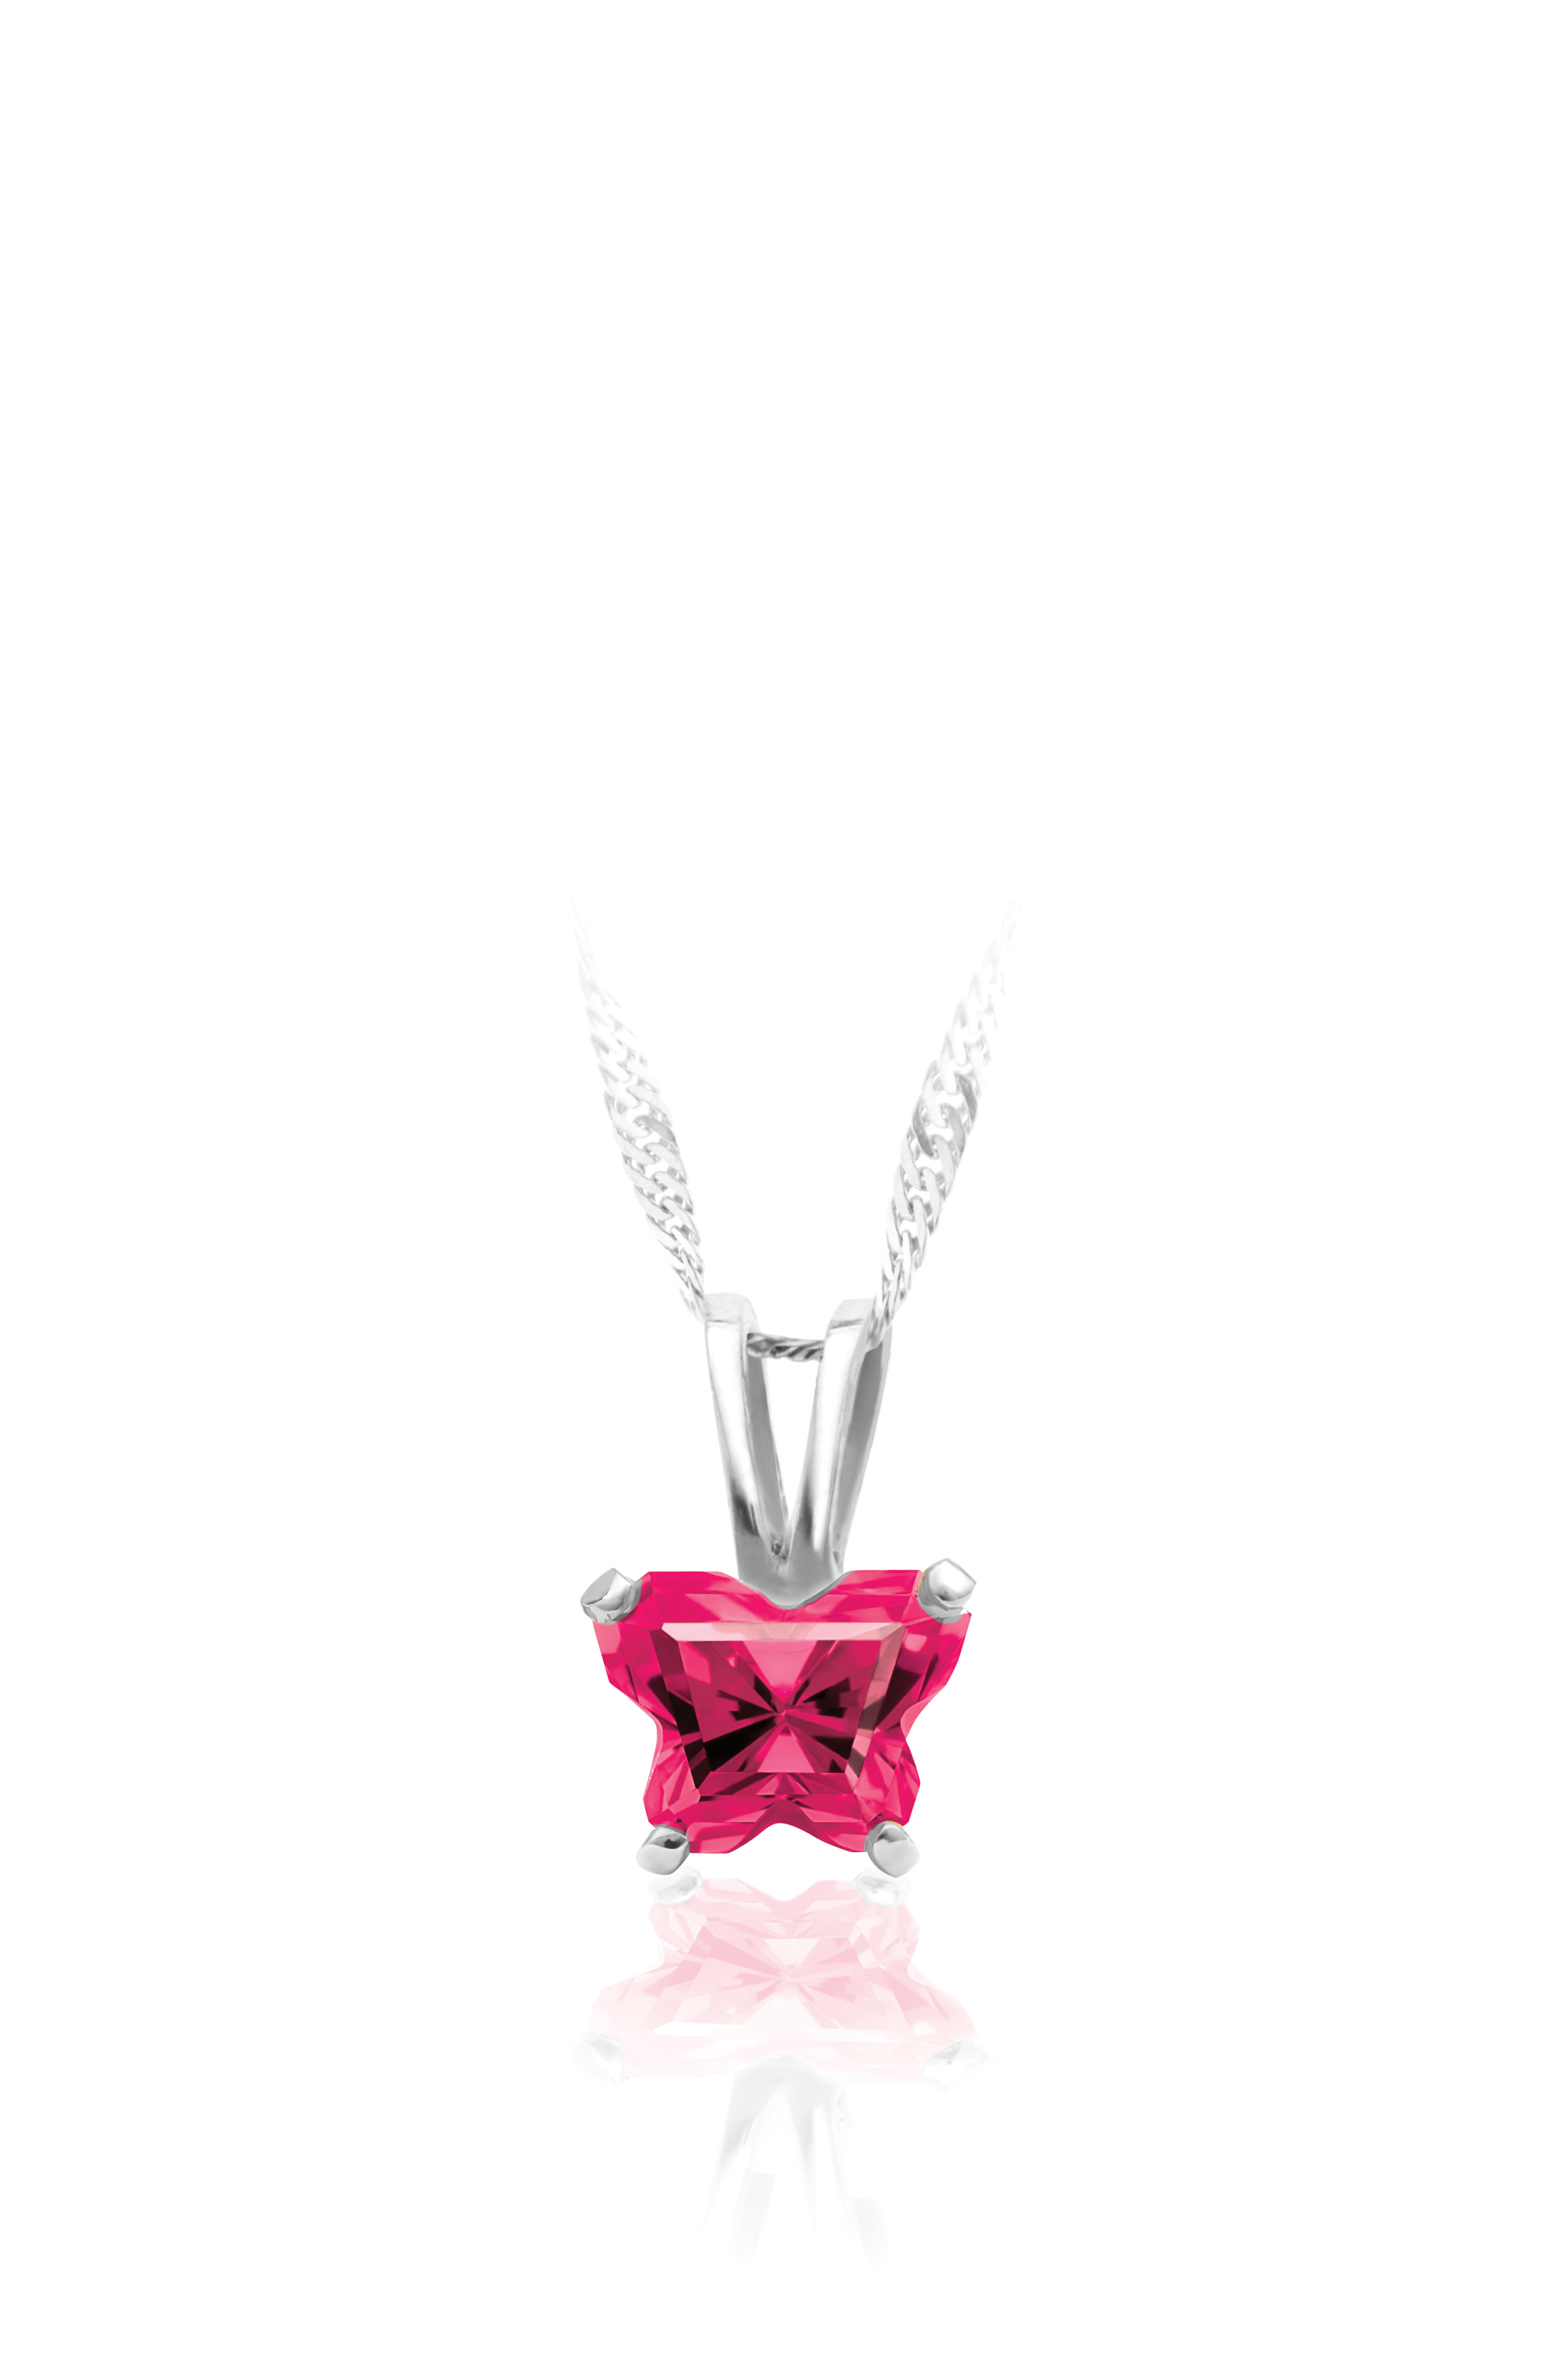 pendant for babies in sterling silver with fuschia cubic zirconia (month of July) - Chain included